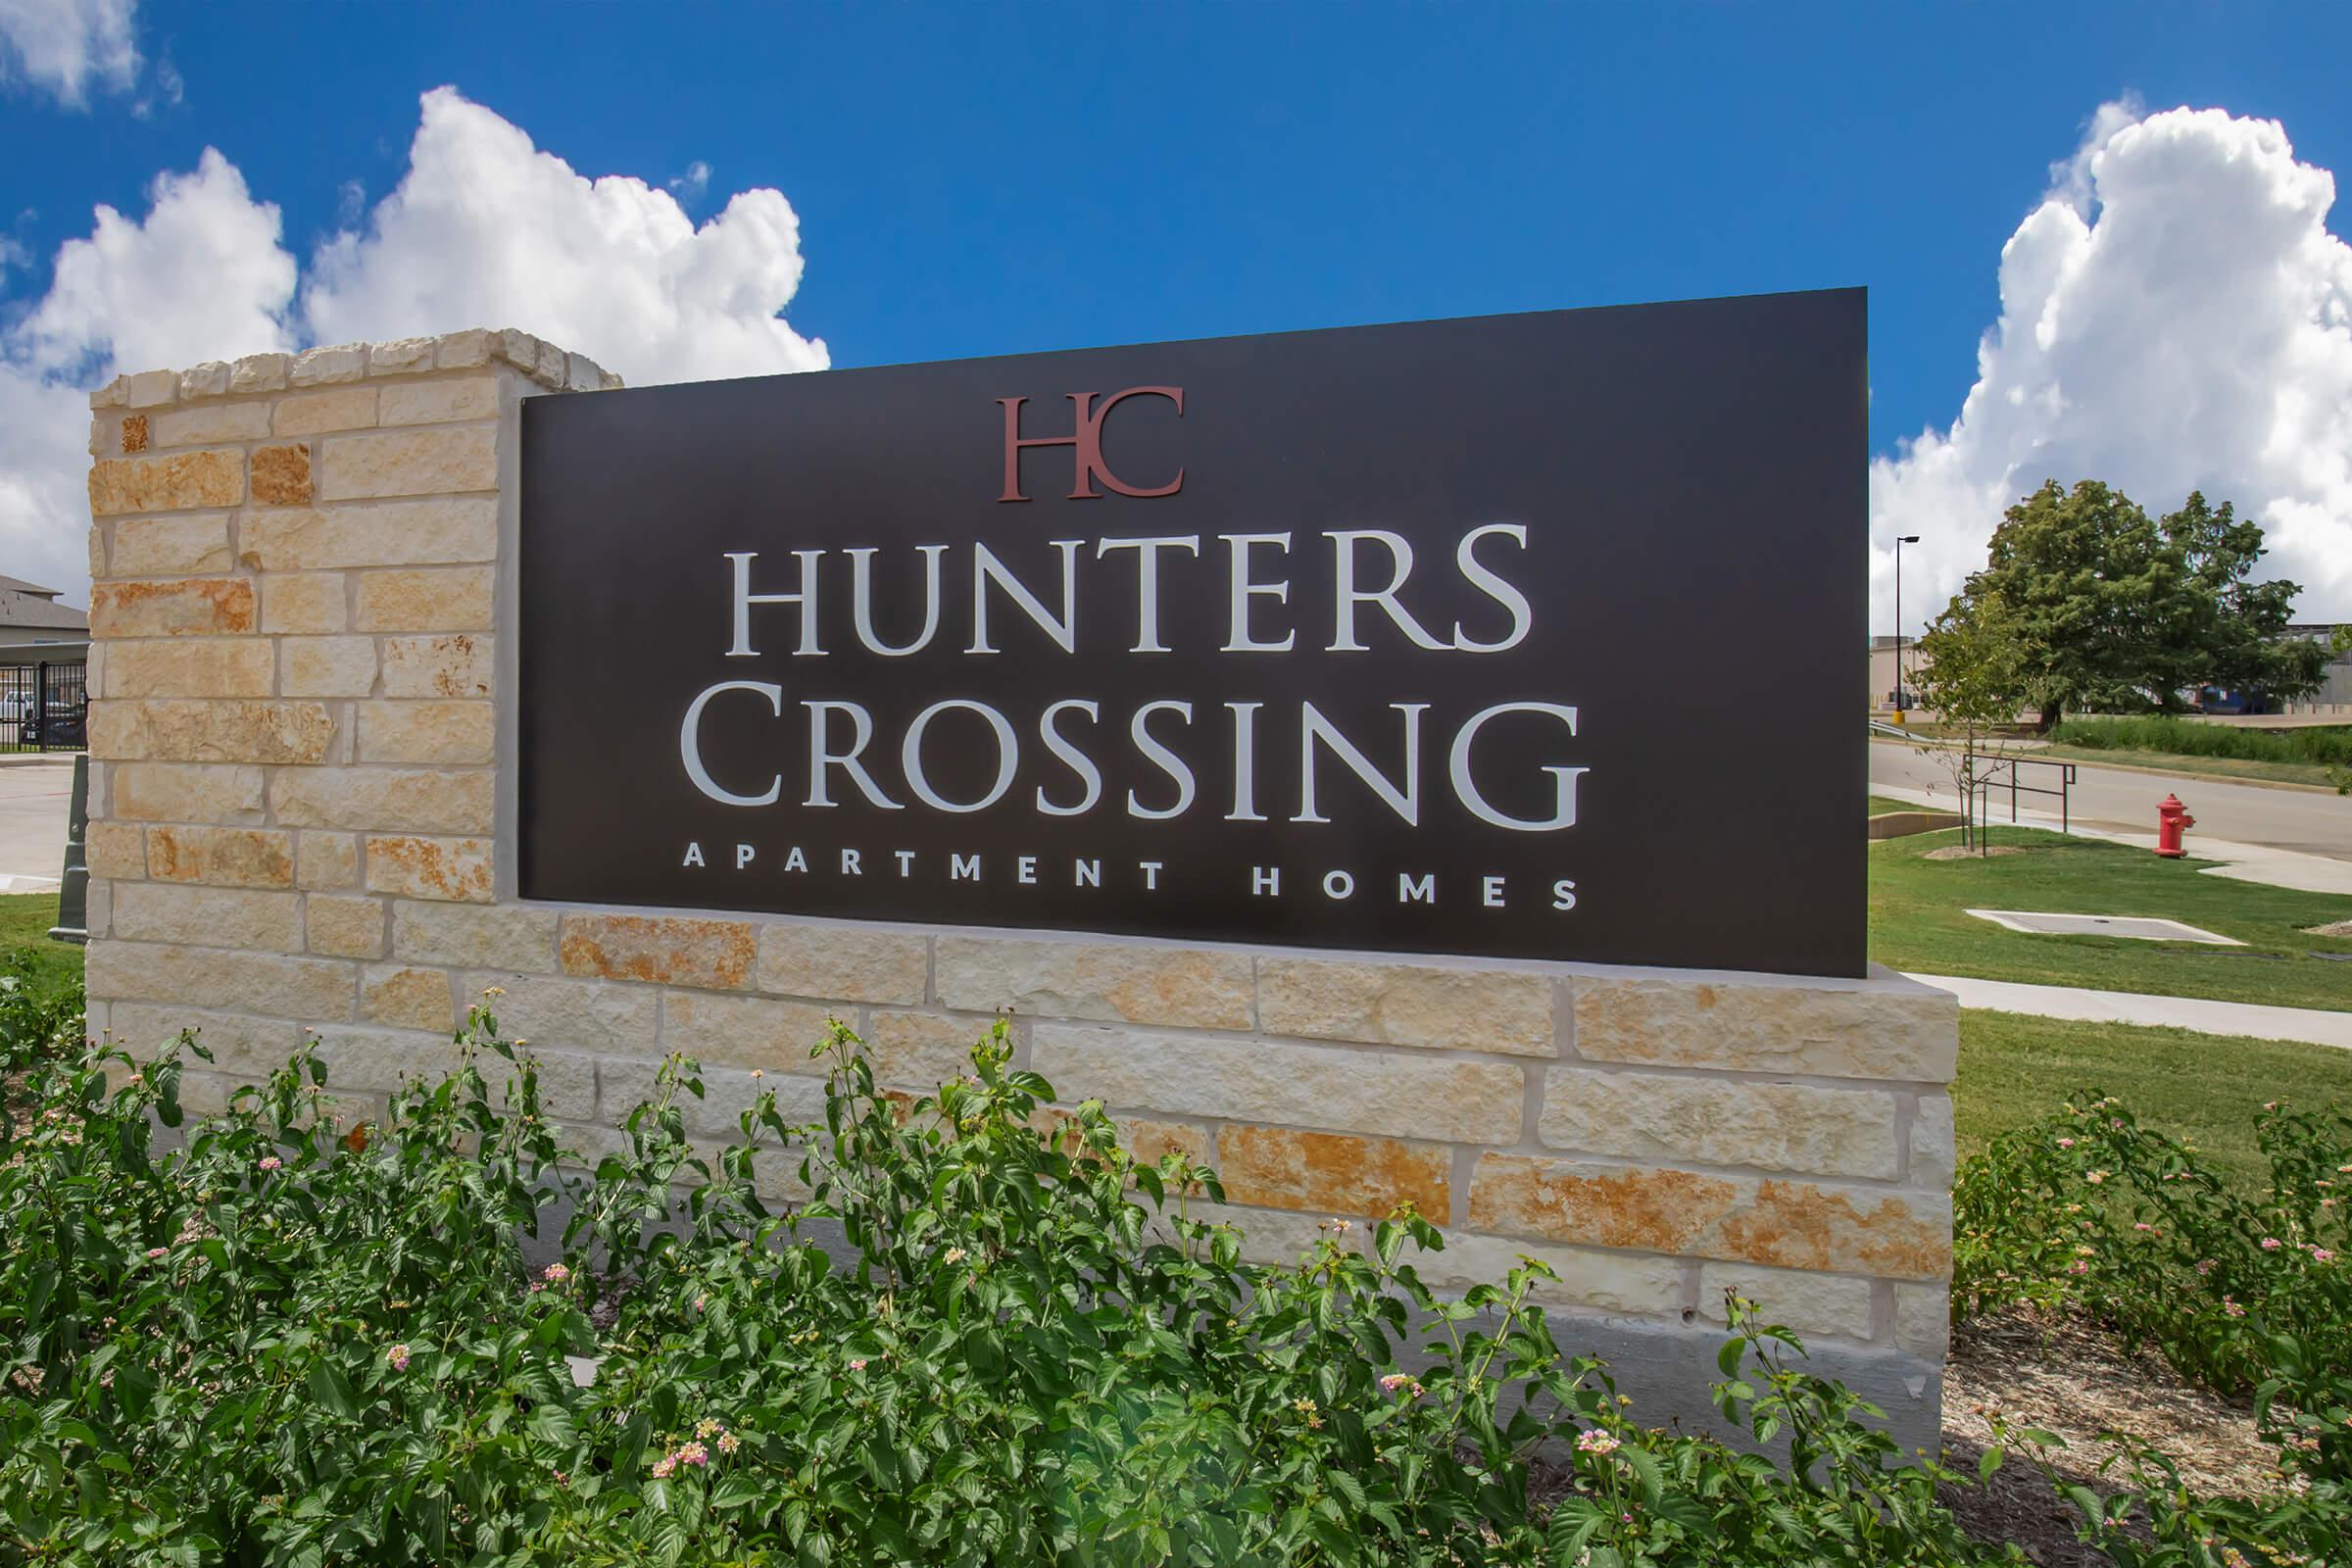 Image of Hunters Crossing Apartment Homes in Bastrop, Texas